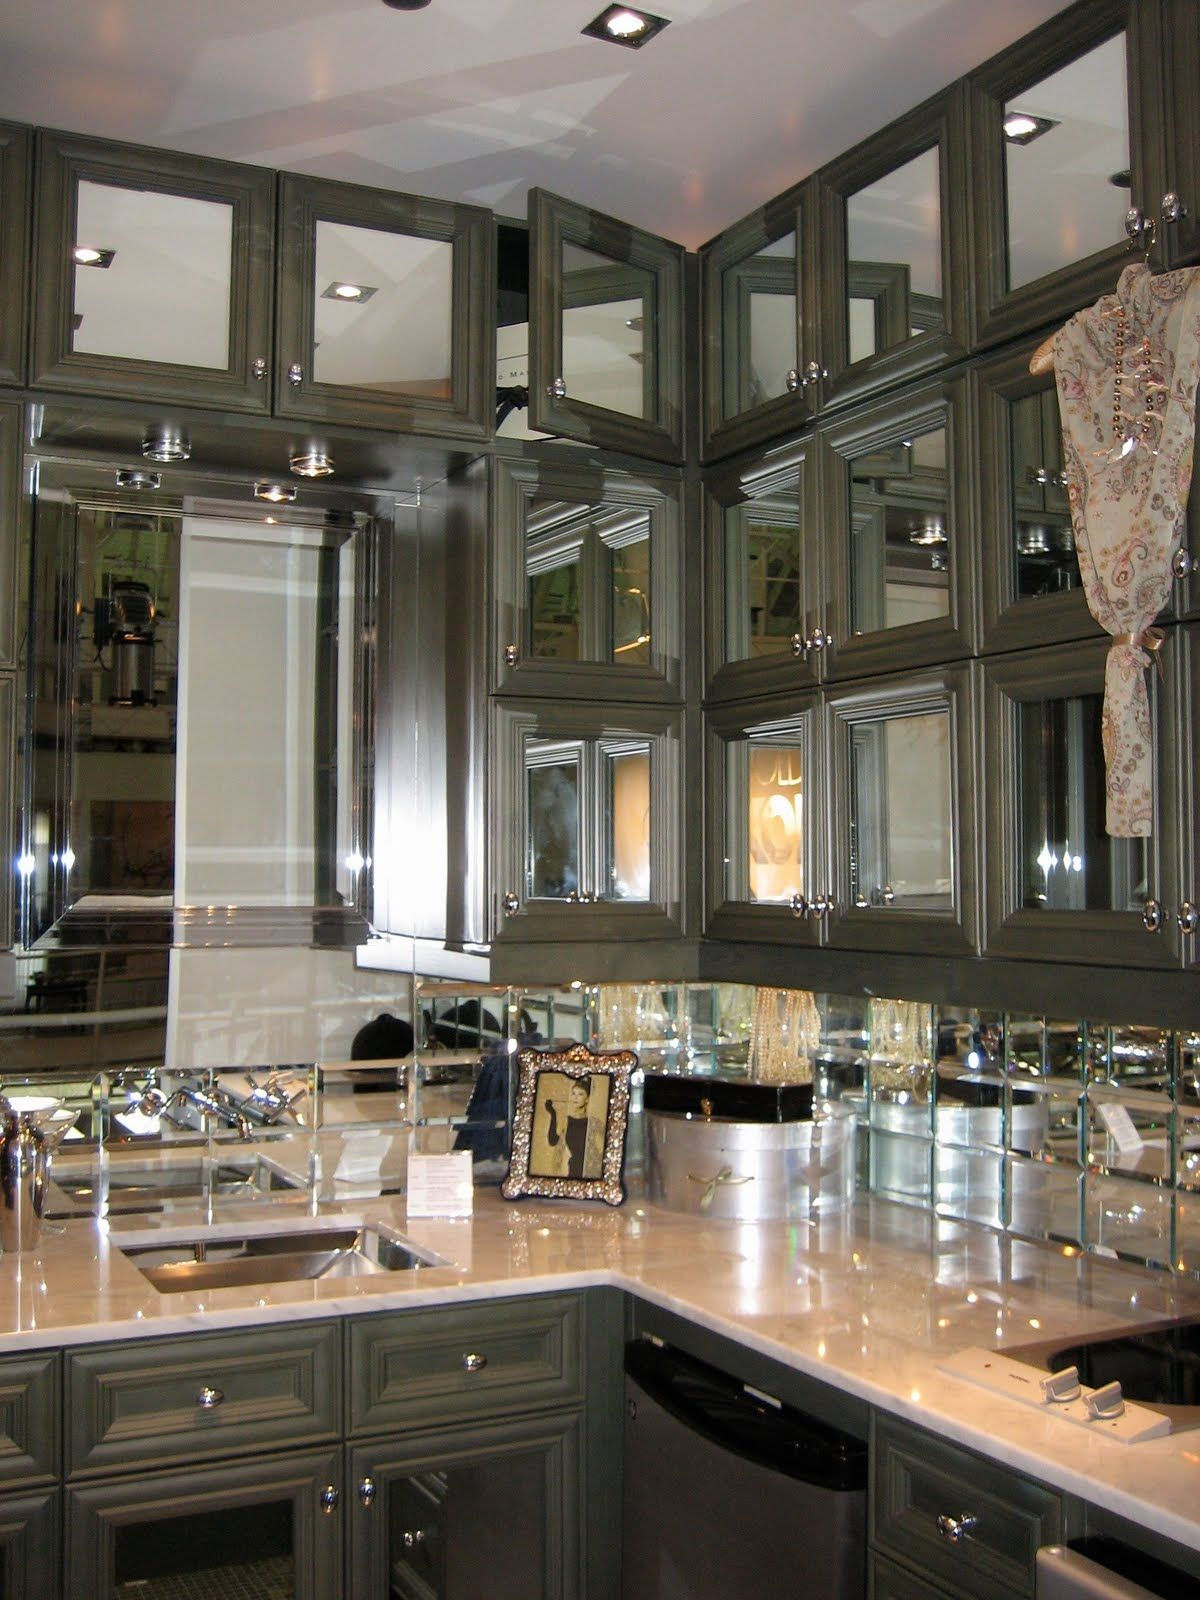 Mirrored Cabinet Doors New Mirrored Kitchen Cabinets with Regard to Your Home